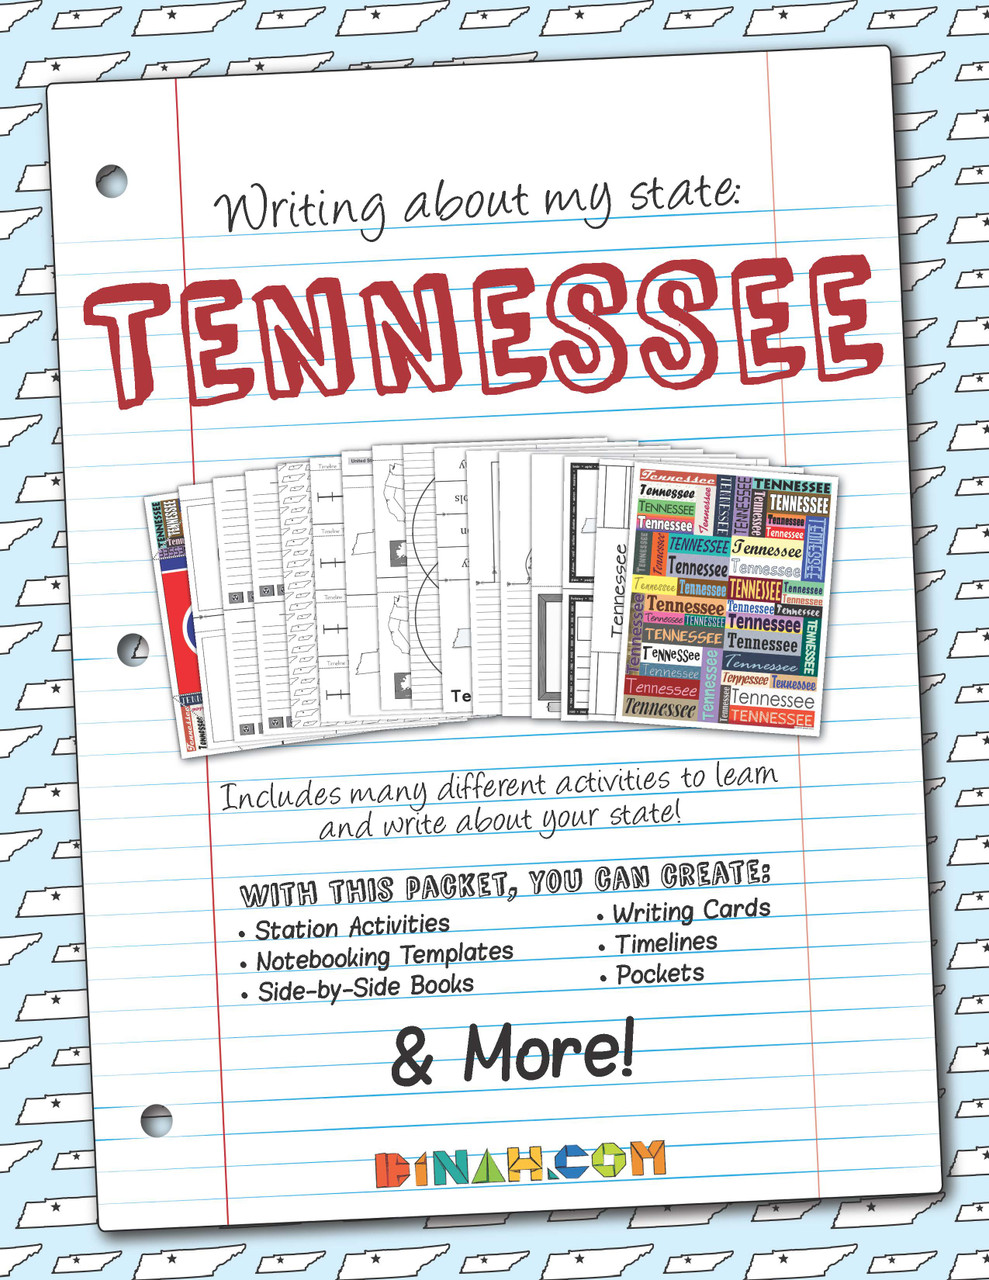 Writing About My State Packet: Tennessee